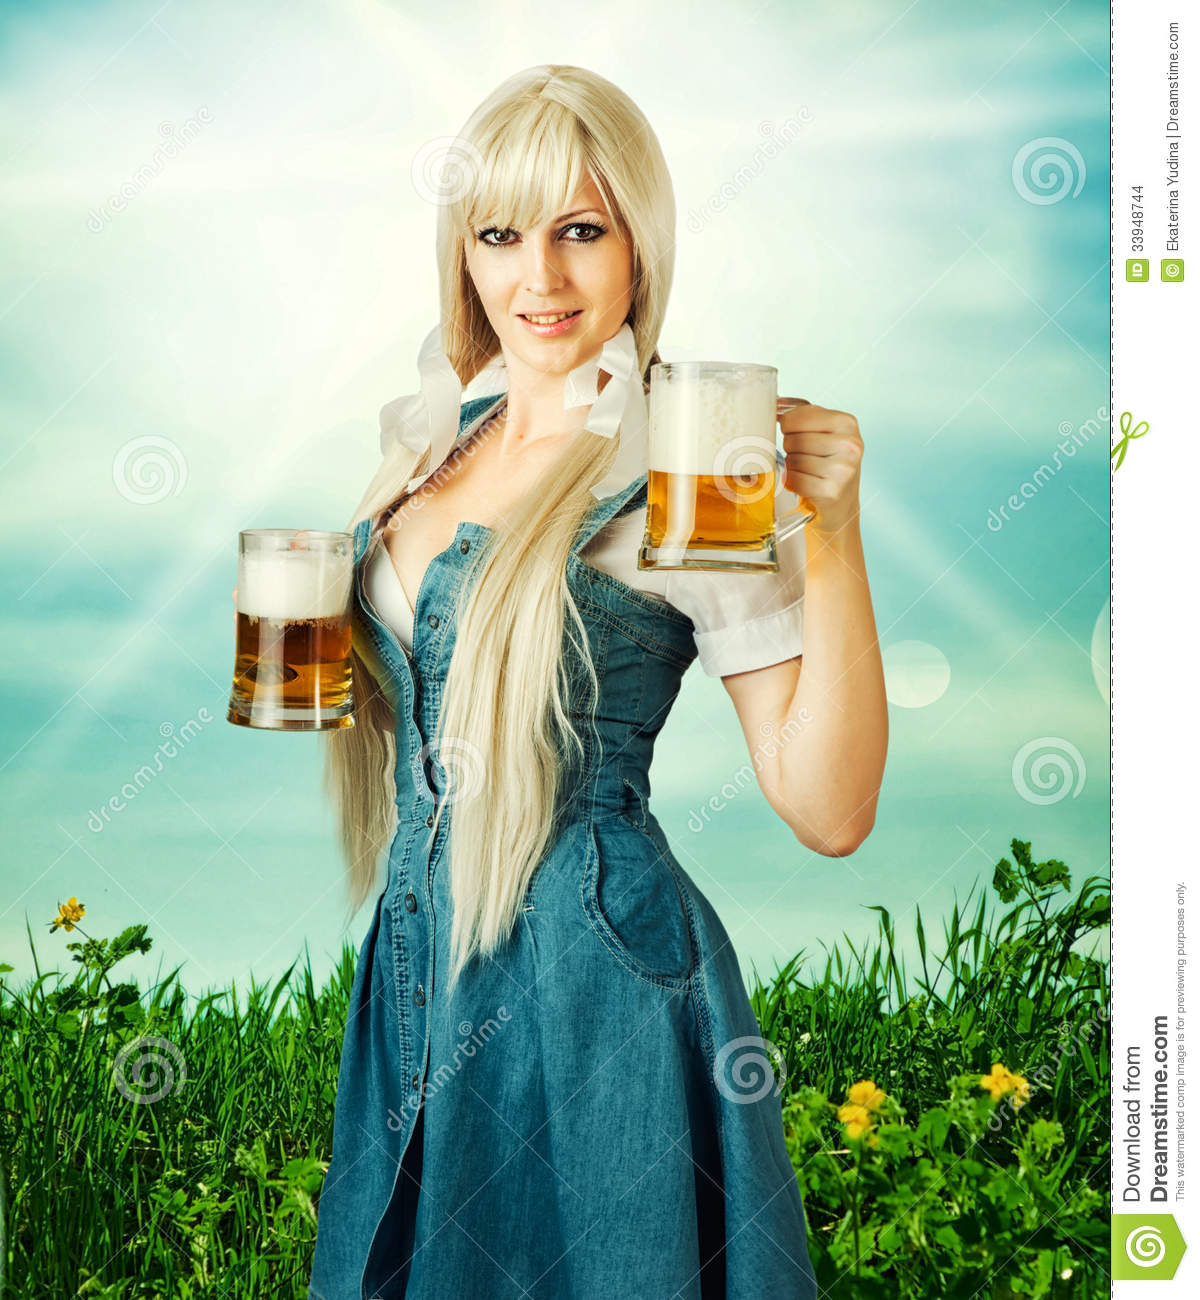 http://thumbs.dreamstime.com/z/sexy-oktoberfest-woman-beer-young-wearing-dirndl-holding-two-mugs-33948744.jpg